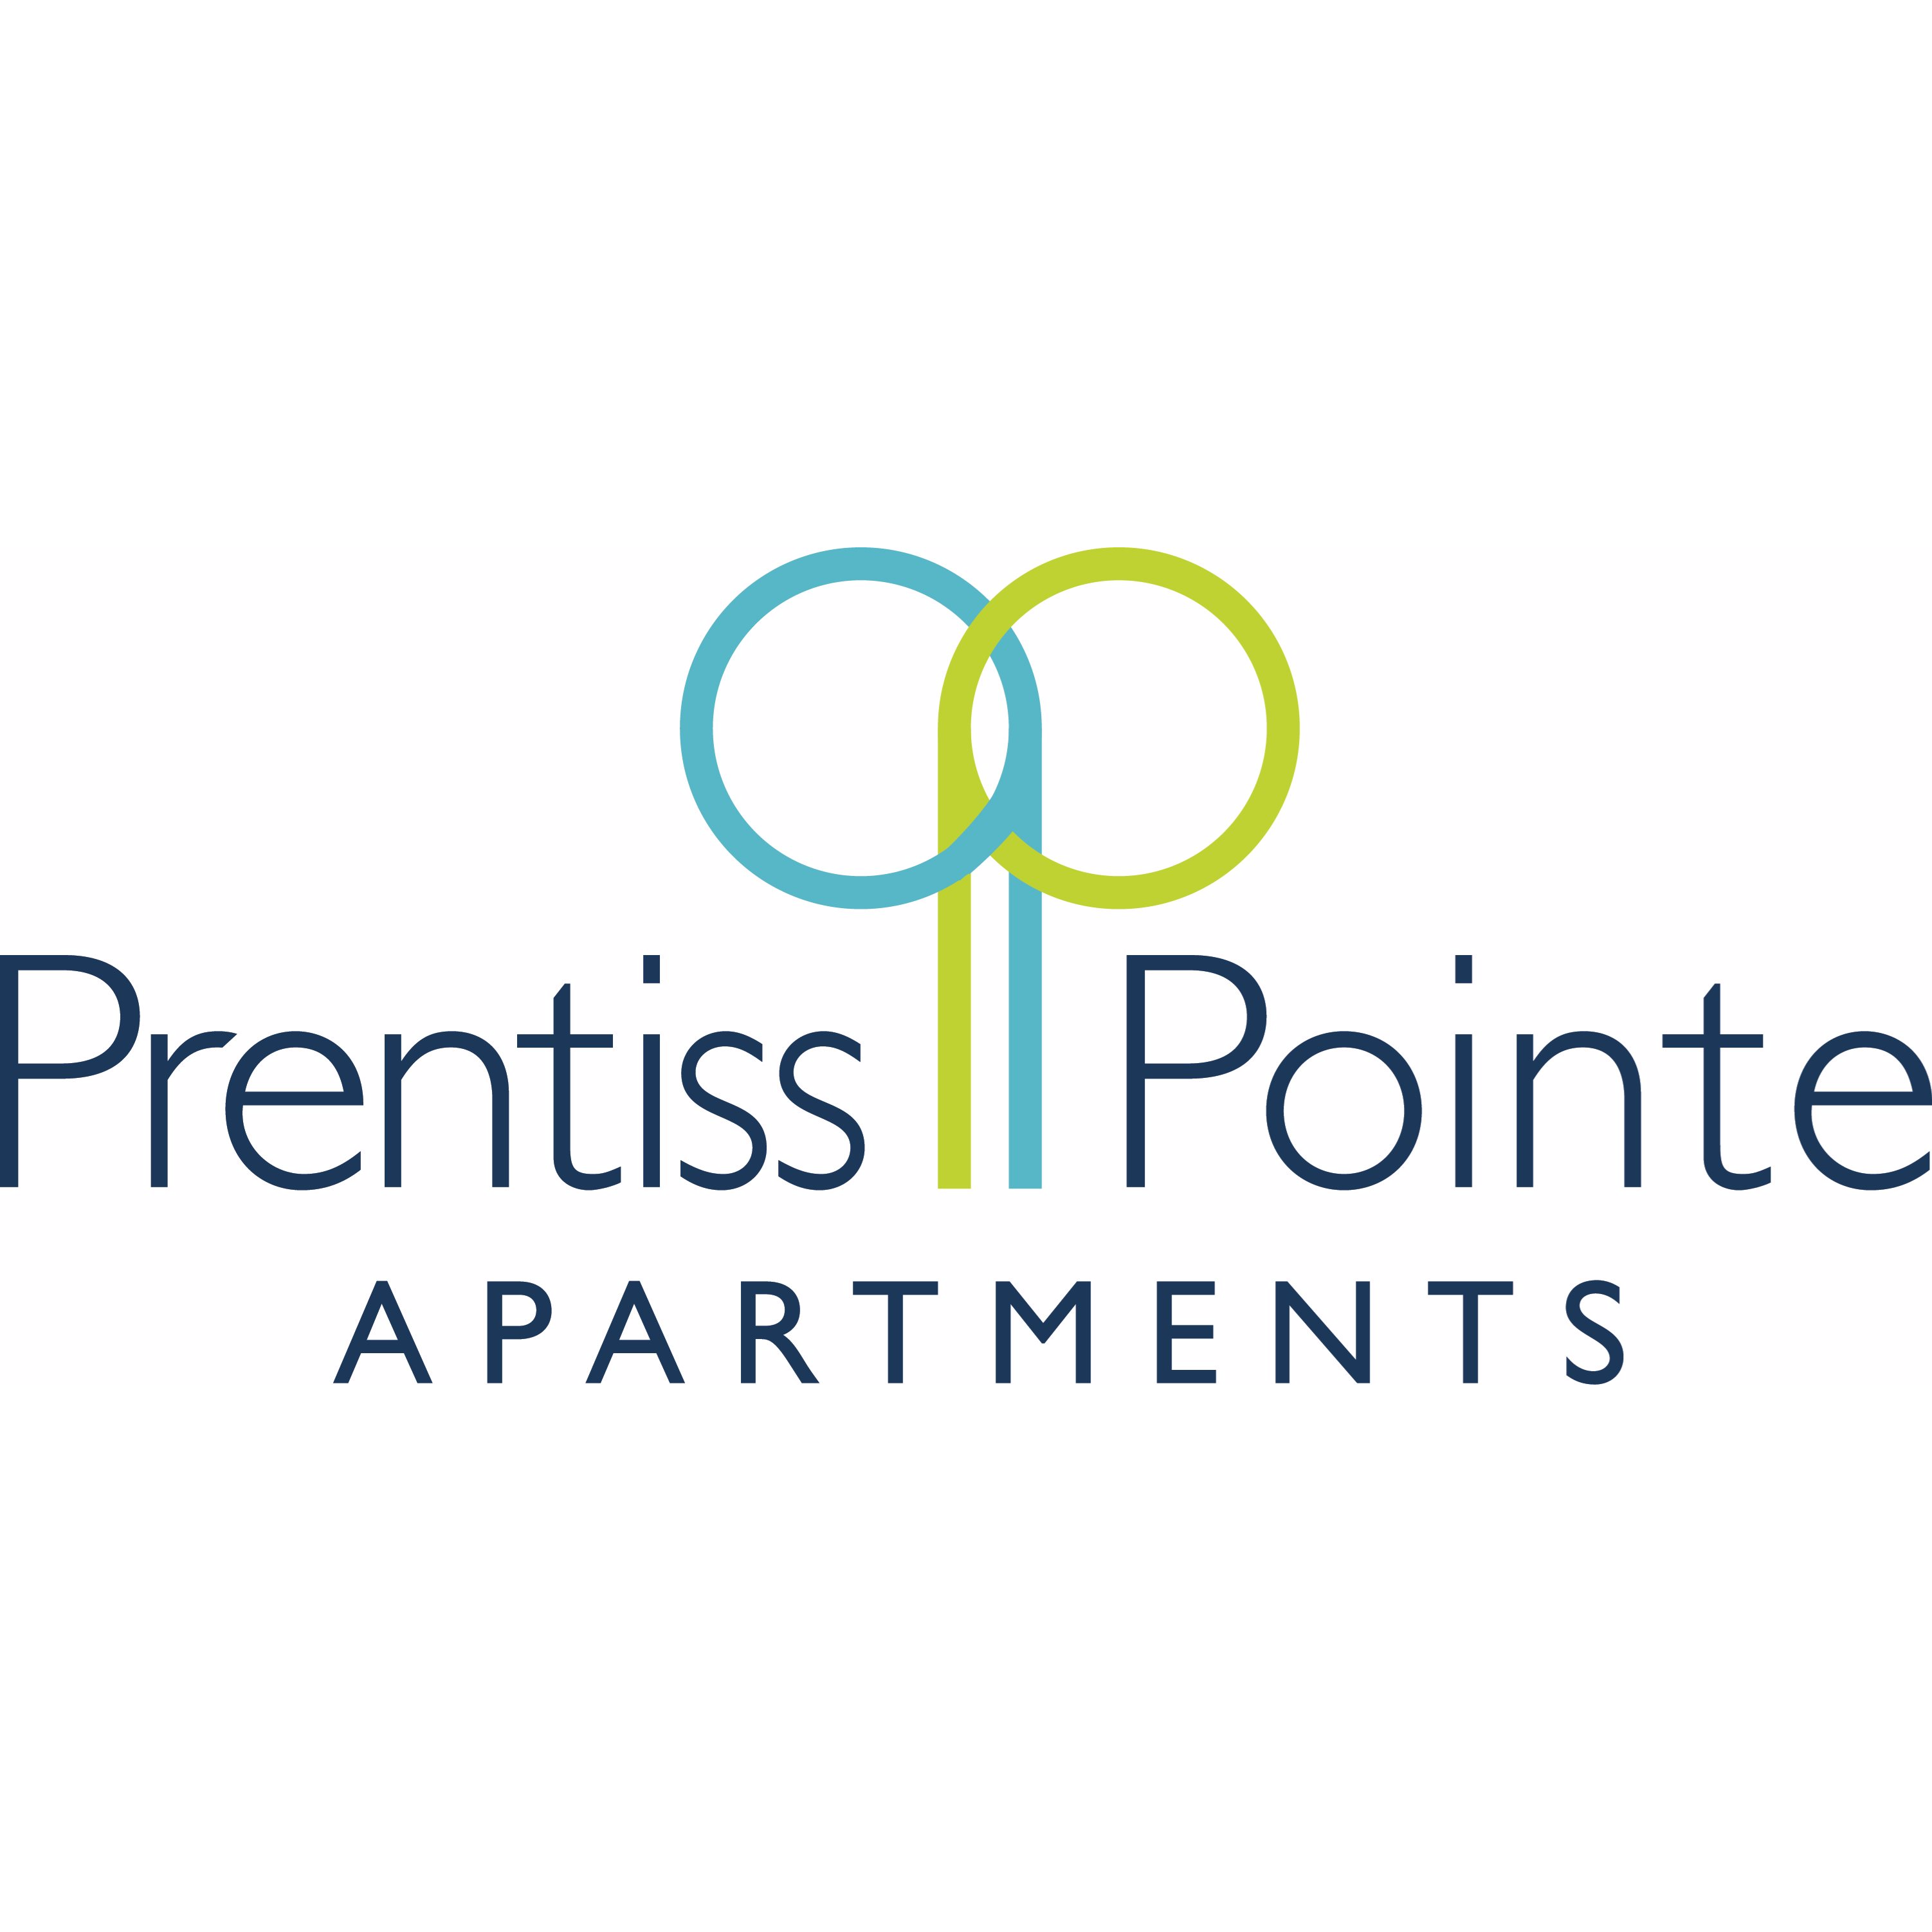 Prentiss Pointe Apartments